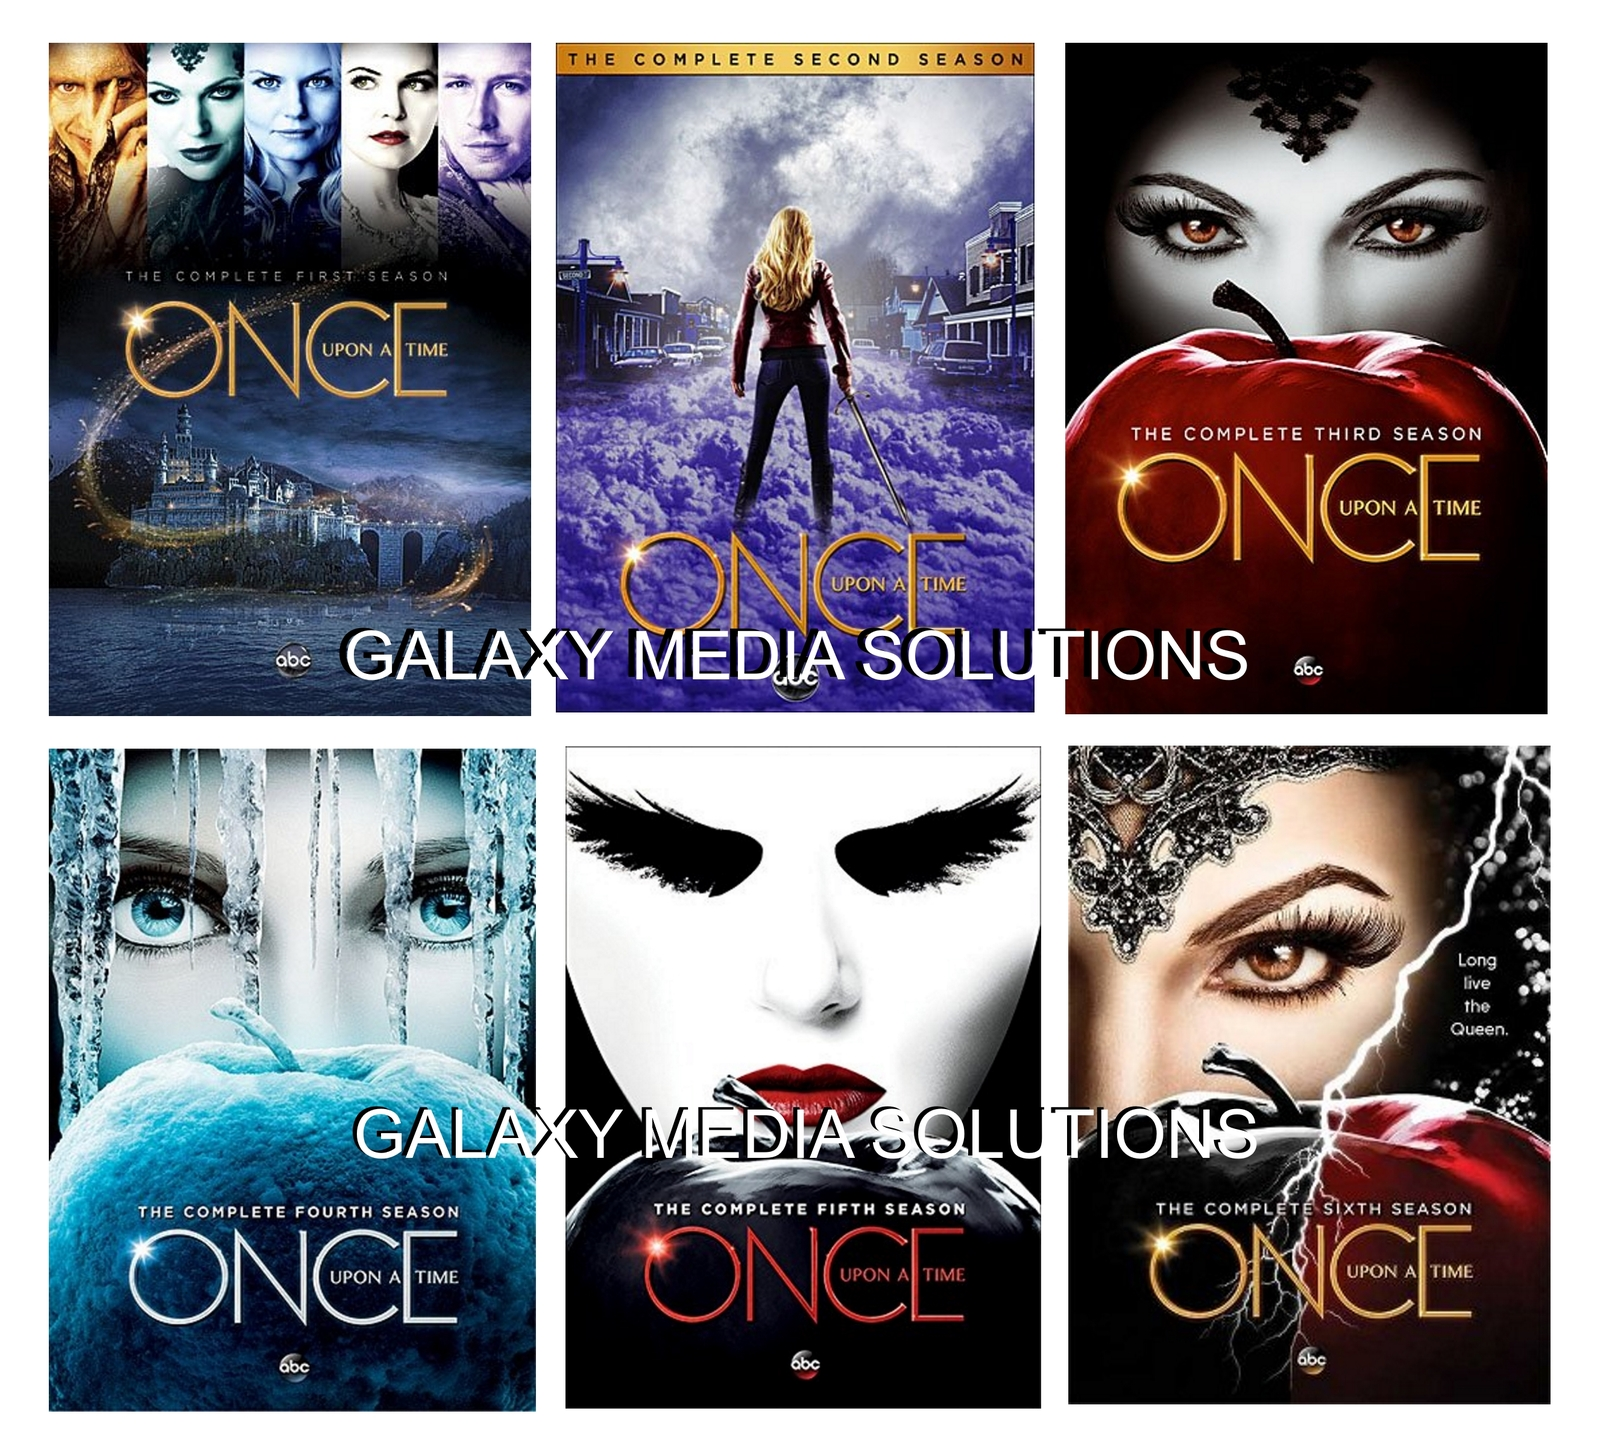 Once upon a time season one five 1 6 dvd bundle  2012 2017 30 disc  1 2 3 4 5 6 2